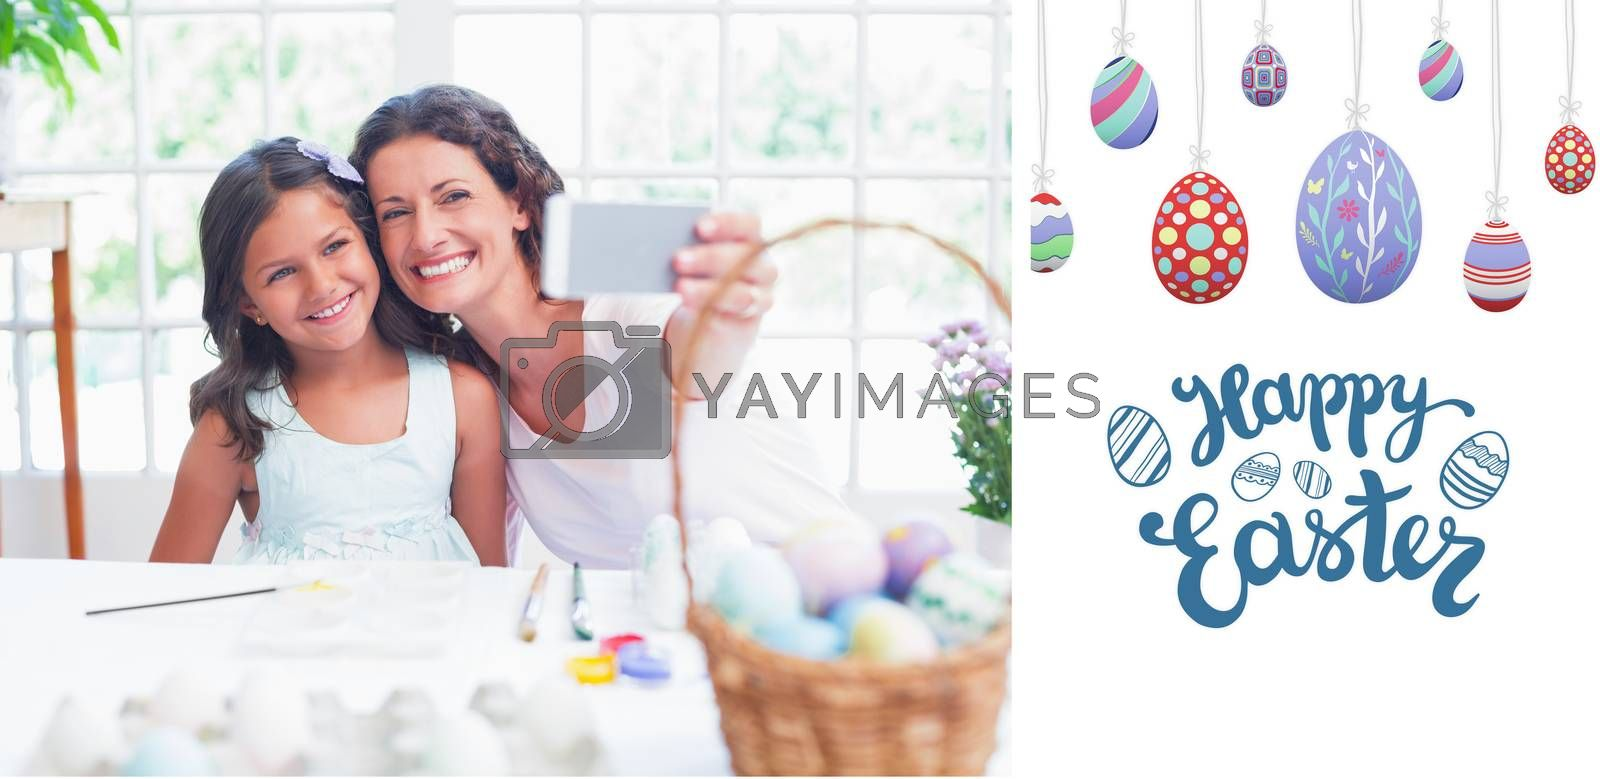 Happy mother and daughter taking selfie against happy easter graphic